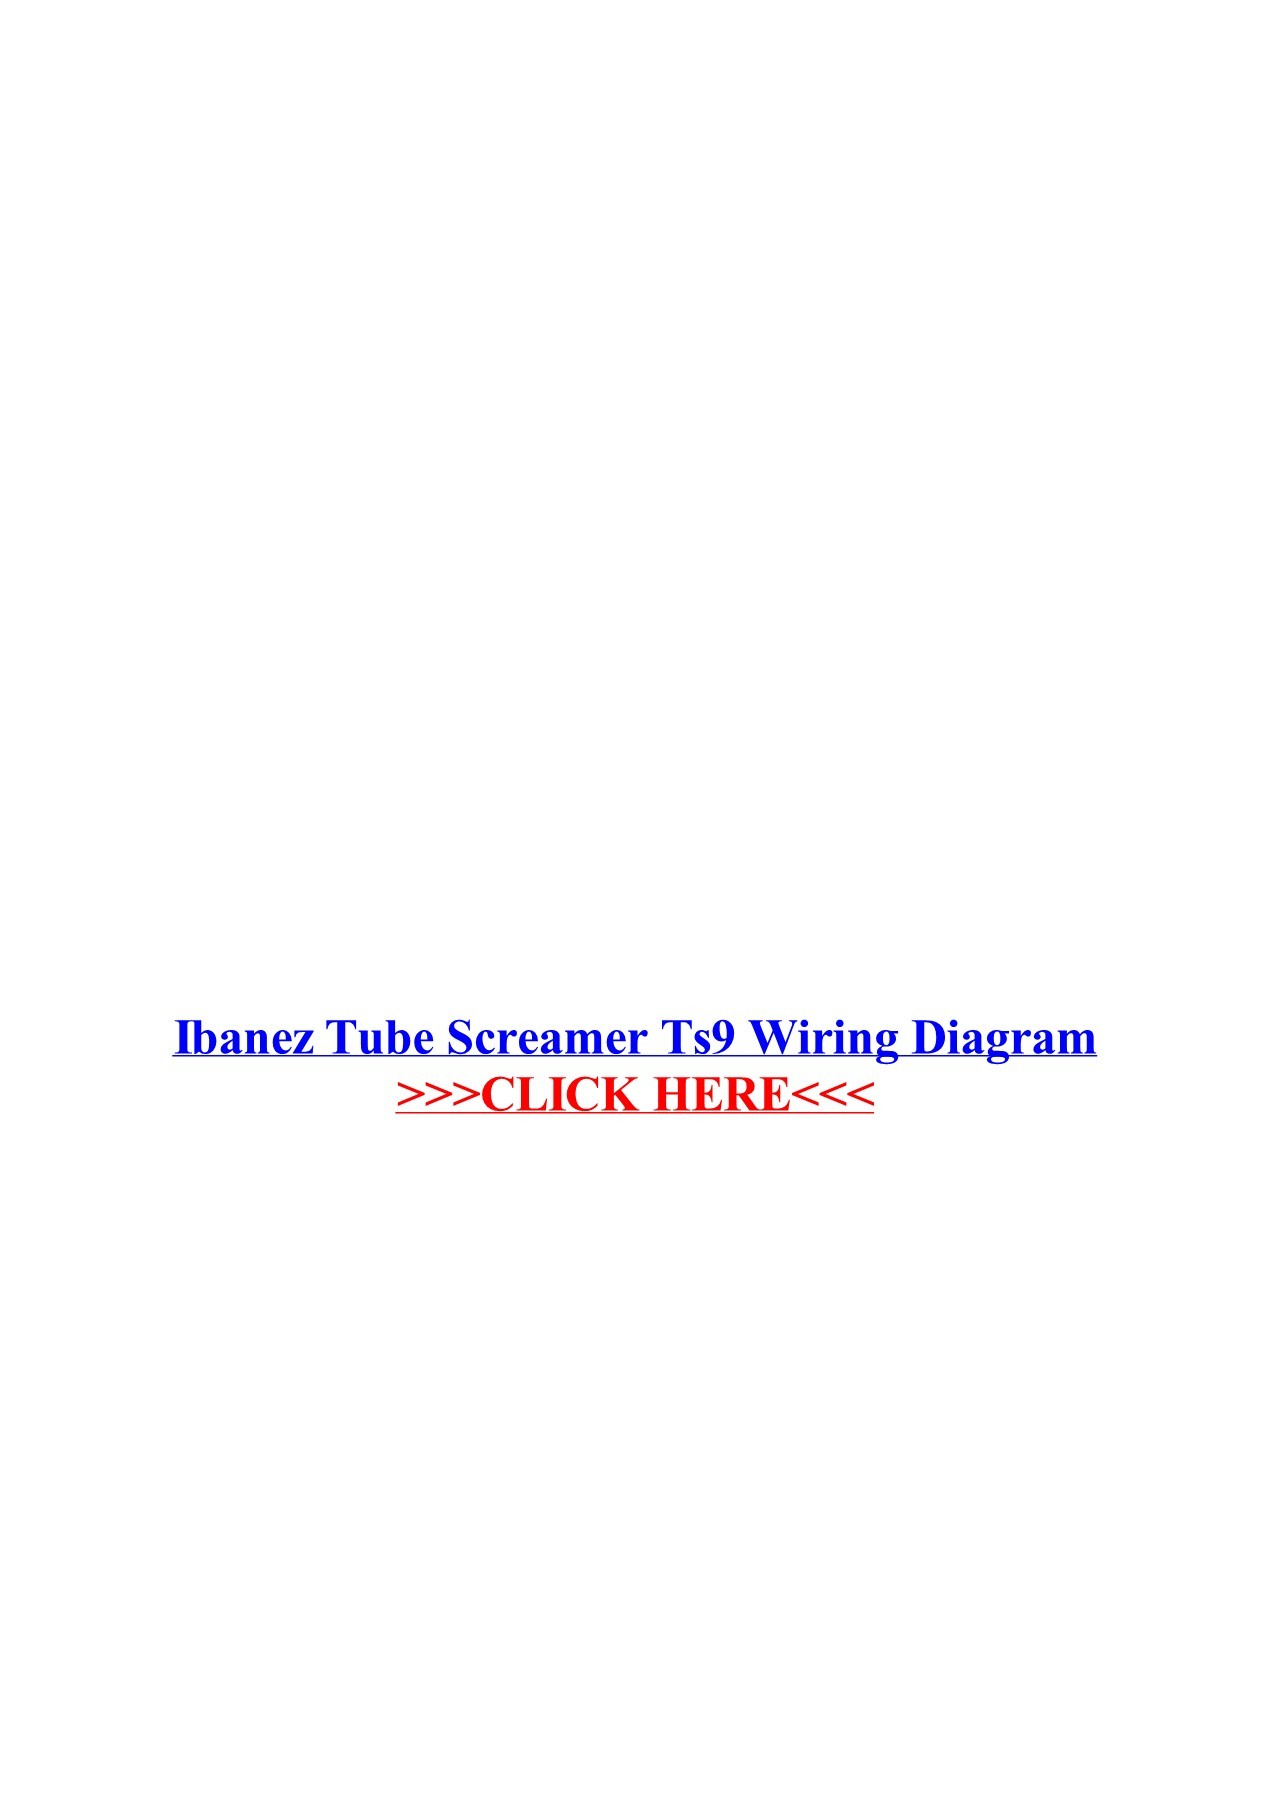 hight resolution of ibanez tube screamer ts9 wiring diagram wordpress com